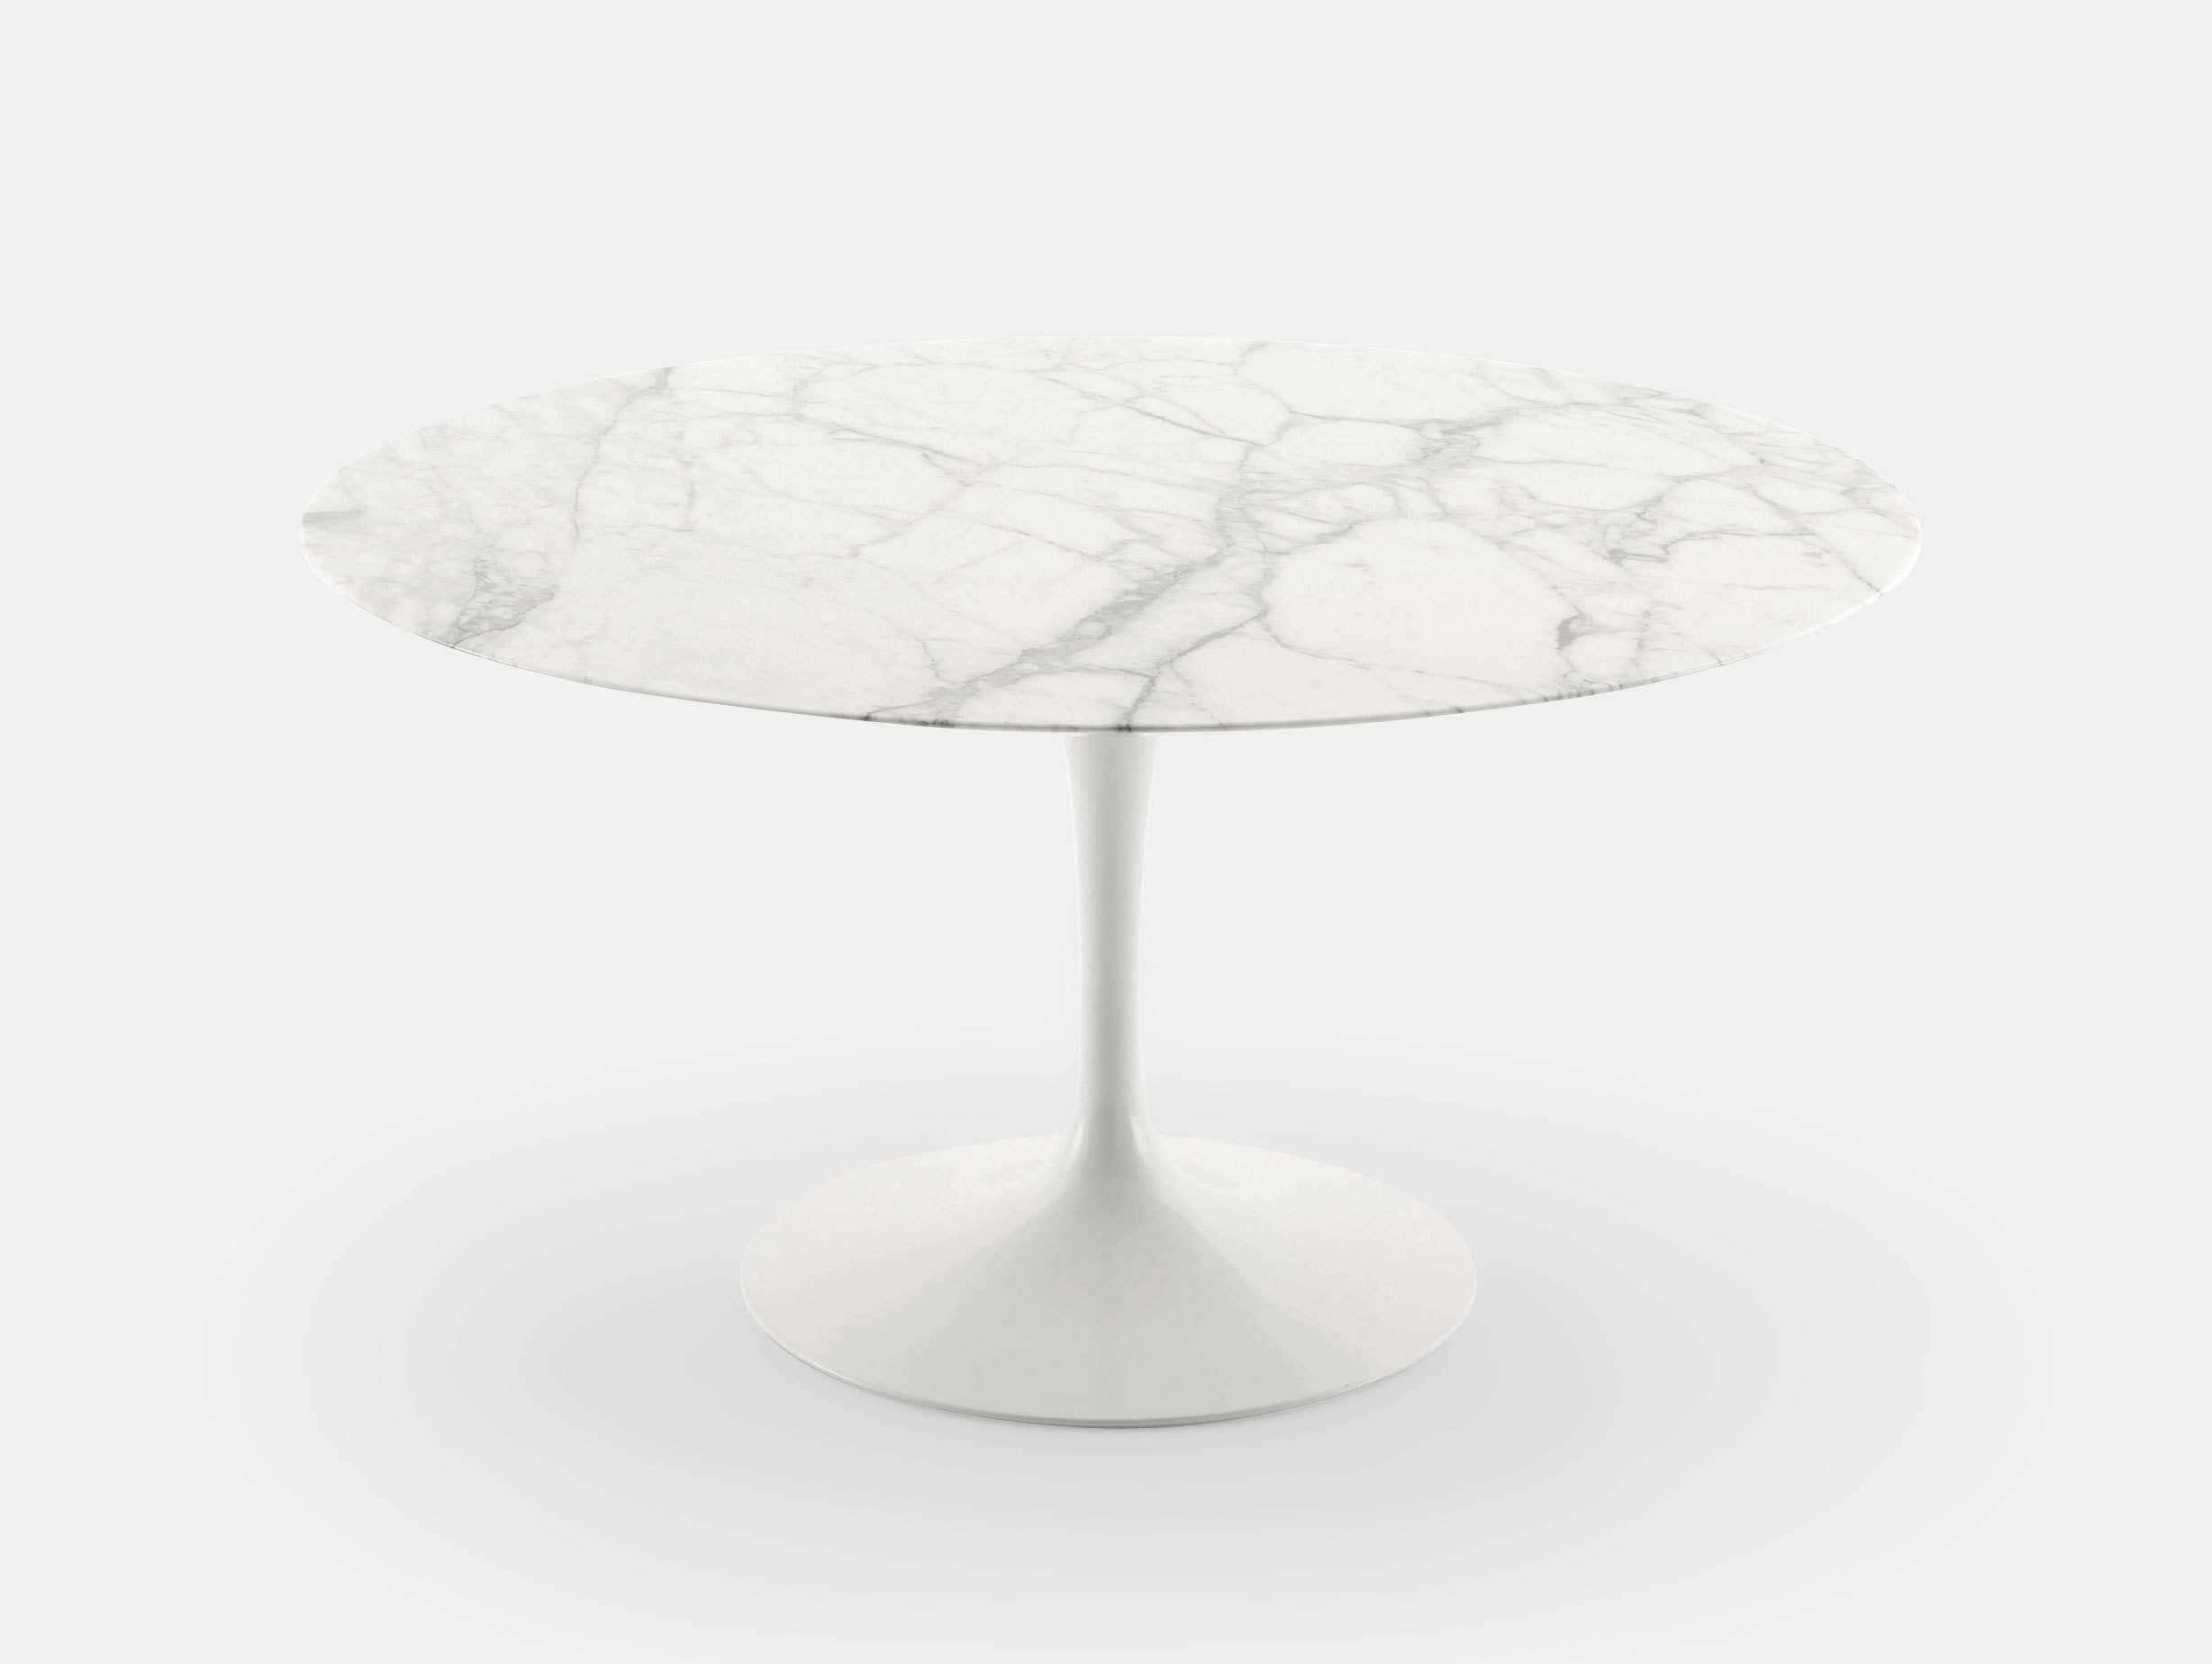 Saarinen Round Dining Table image 1